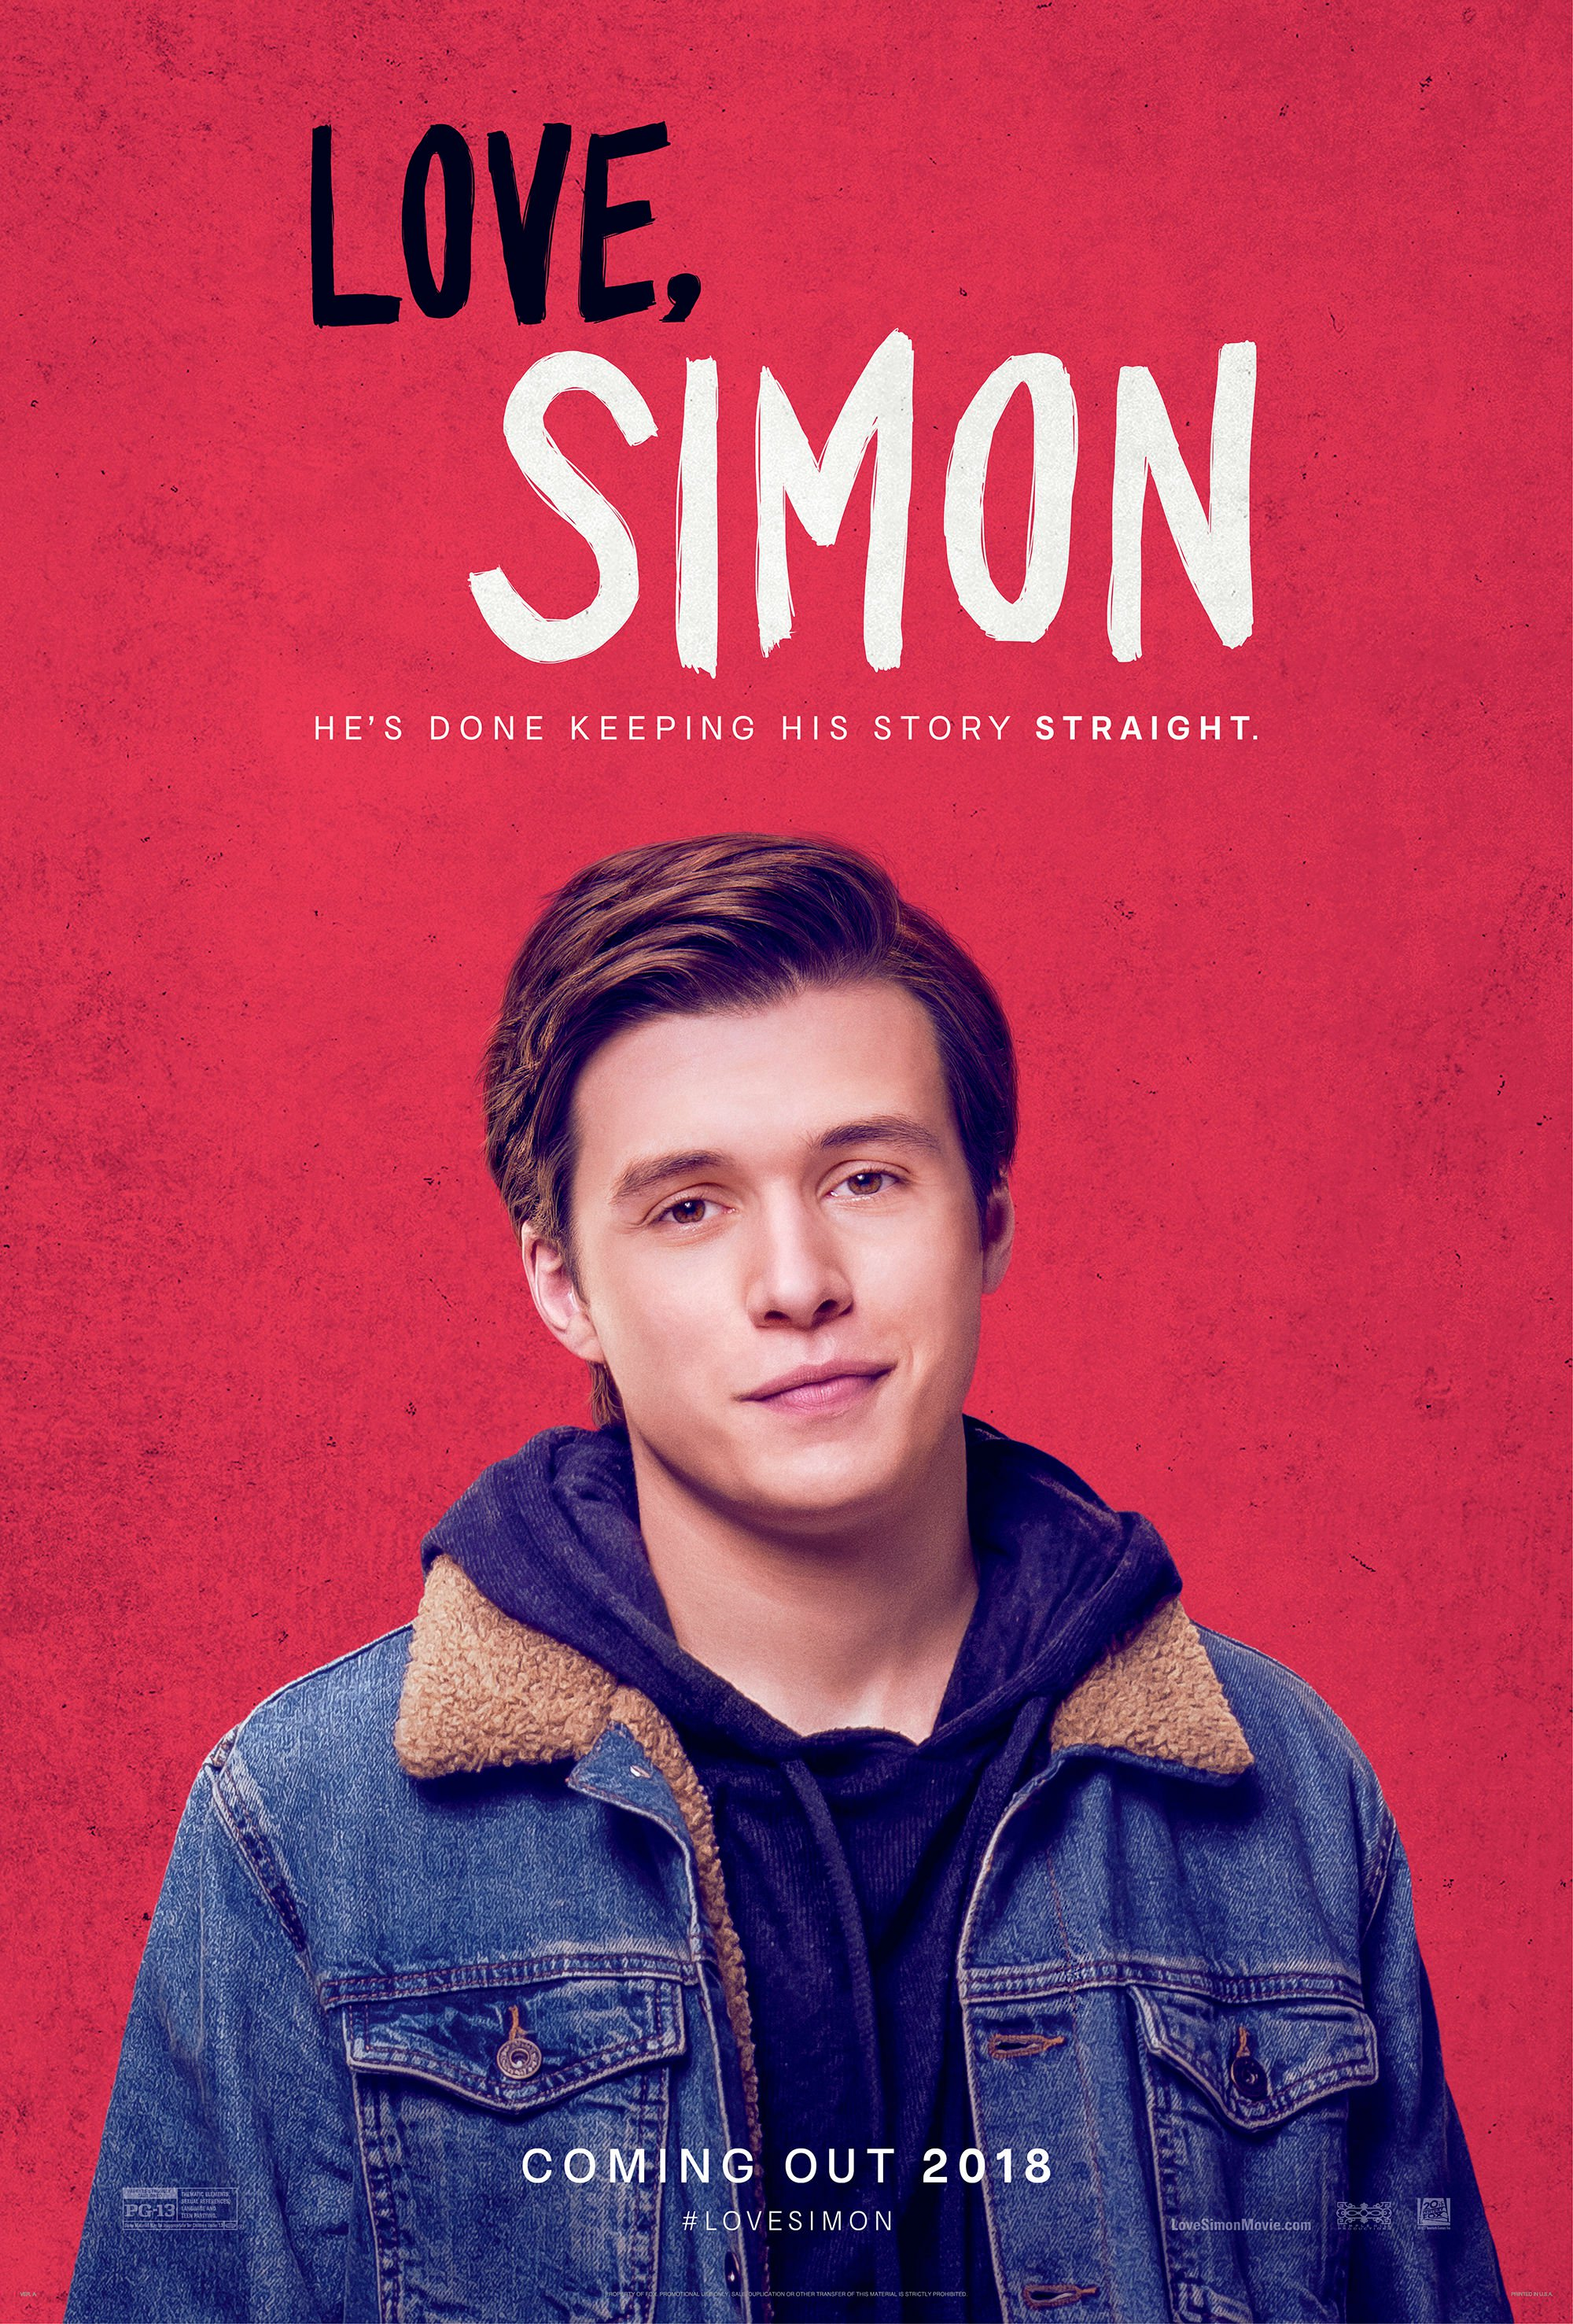 Film poster showing Nick Robinson in front of a red background.